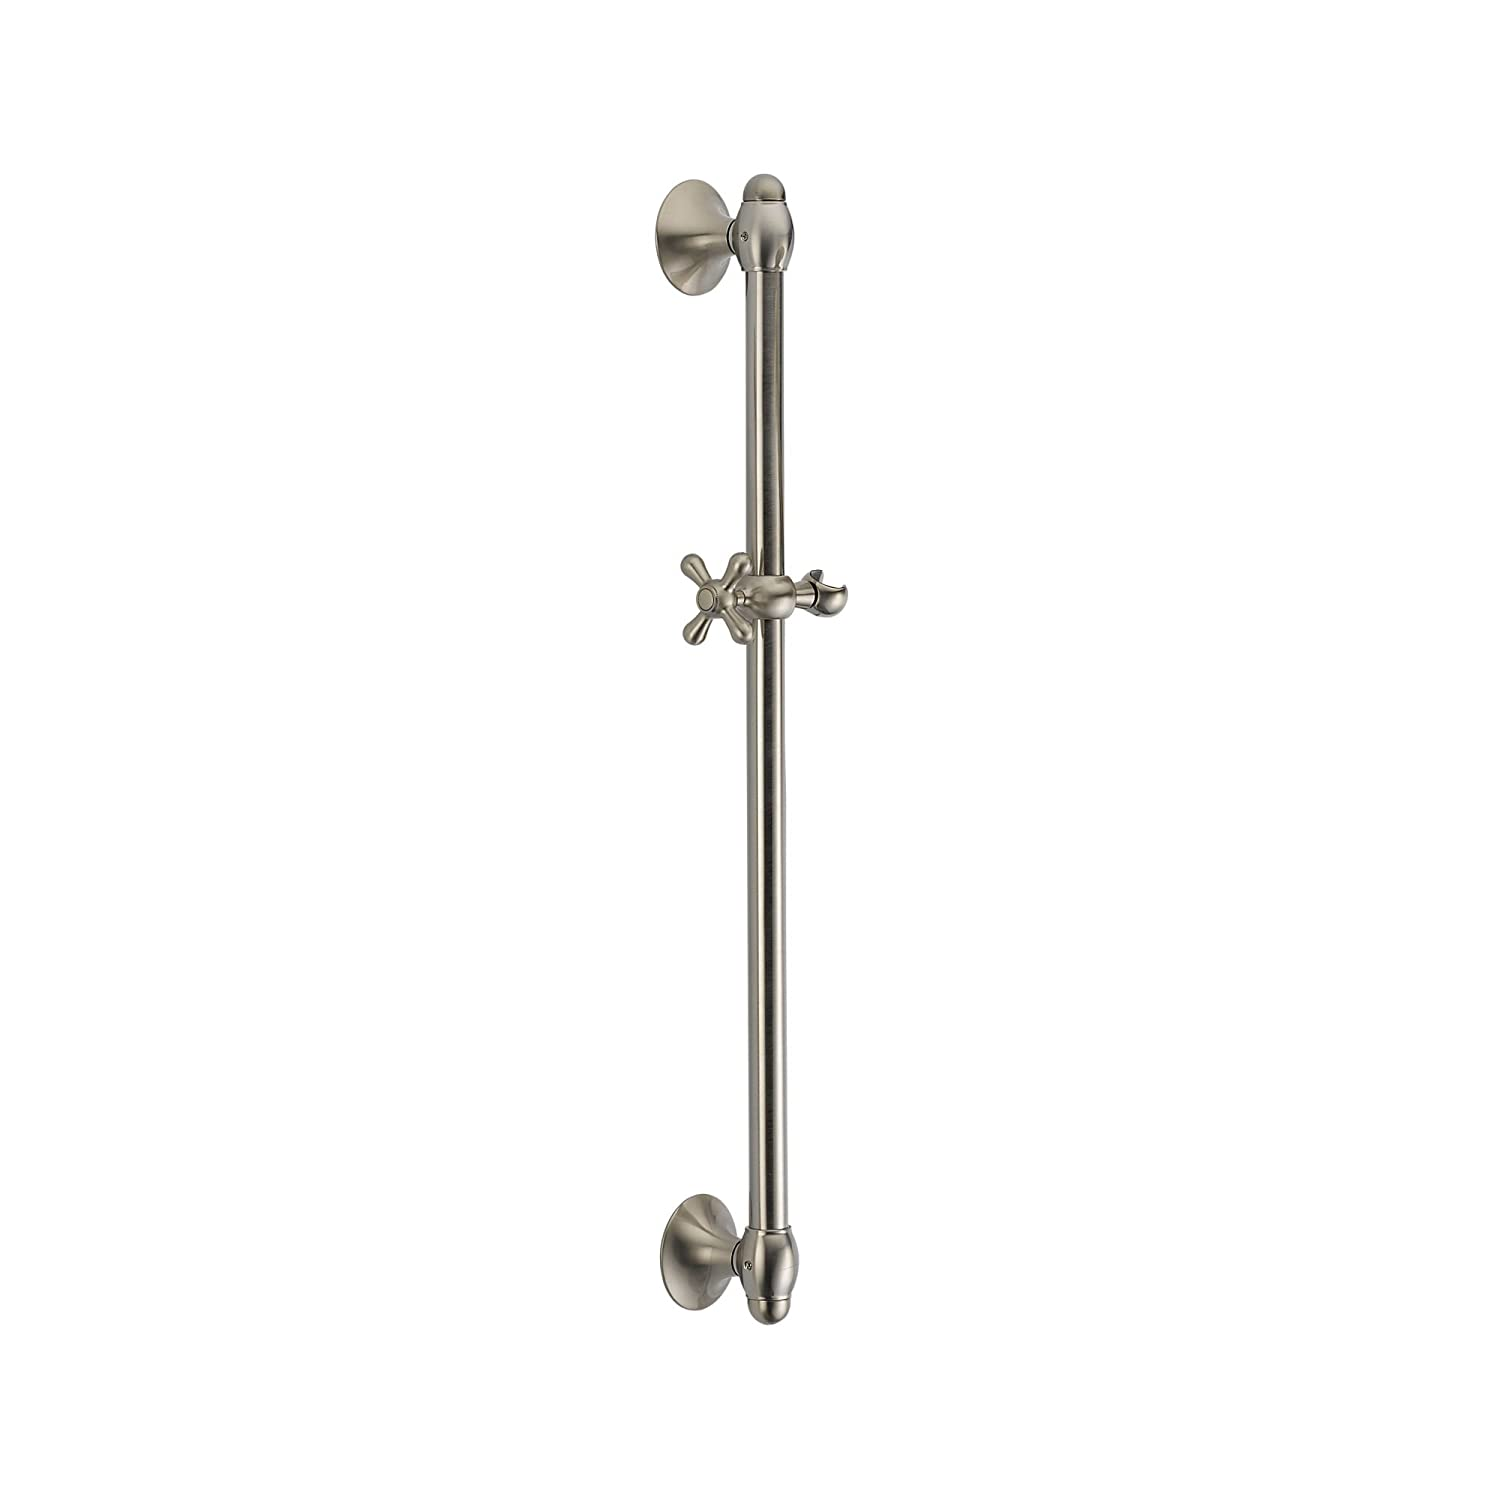 Delta Faucet 55083 29-Inch Adjustable Wall Bar, Chrome - Hand Held ...